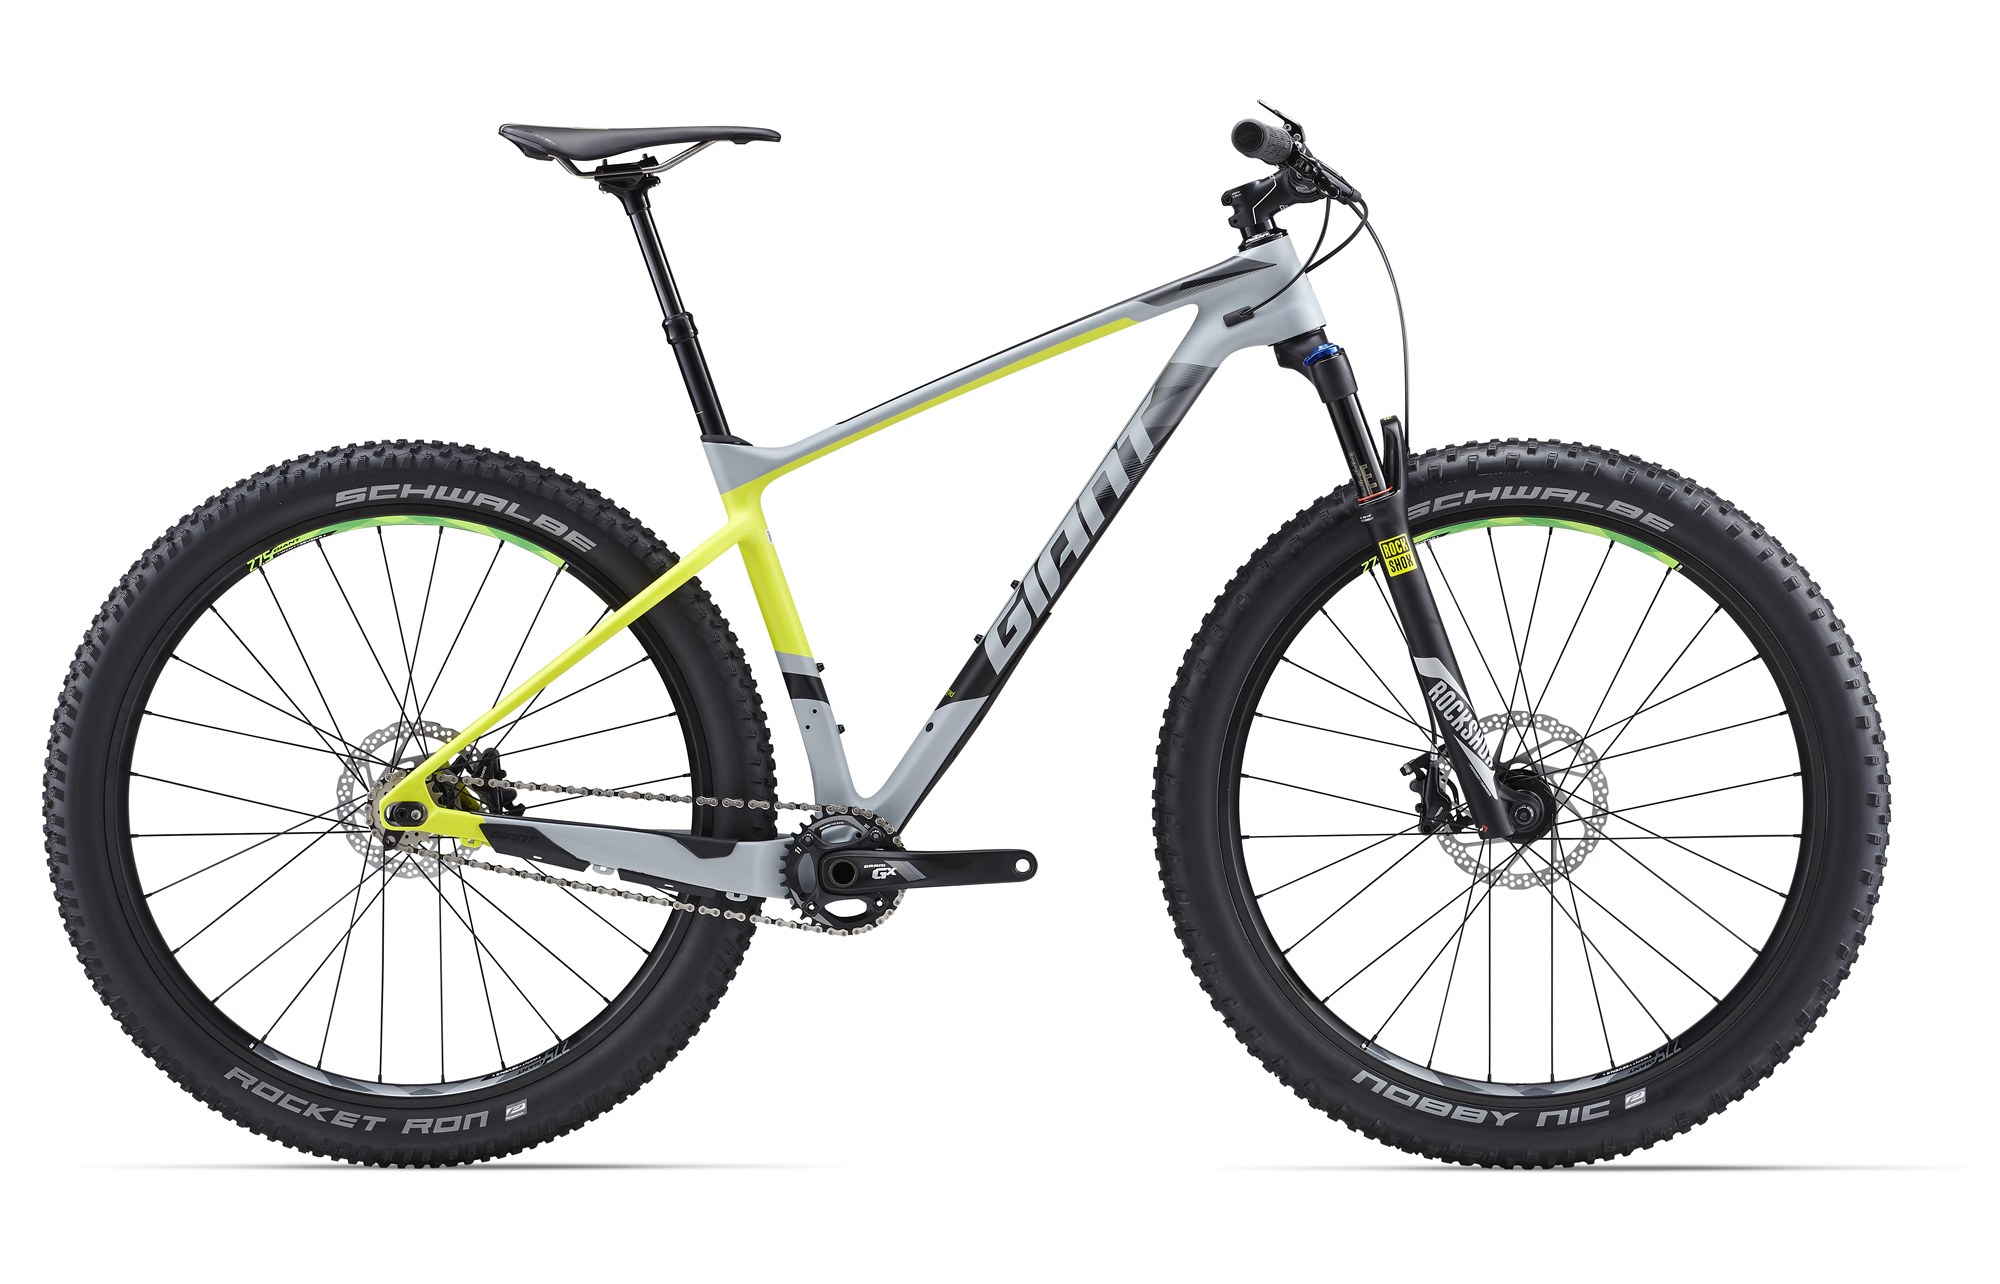 For those who like to suffer in style, the XtC is also available as a single speed 29er.